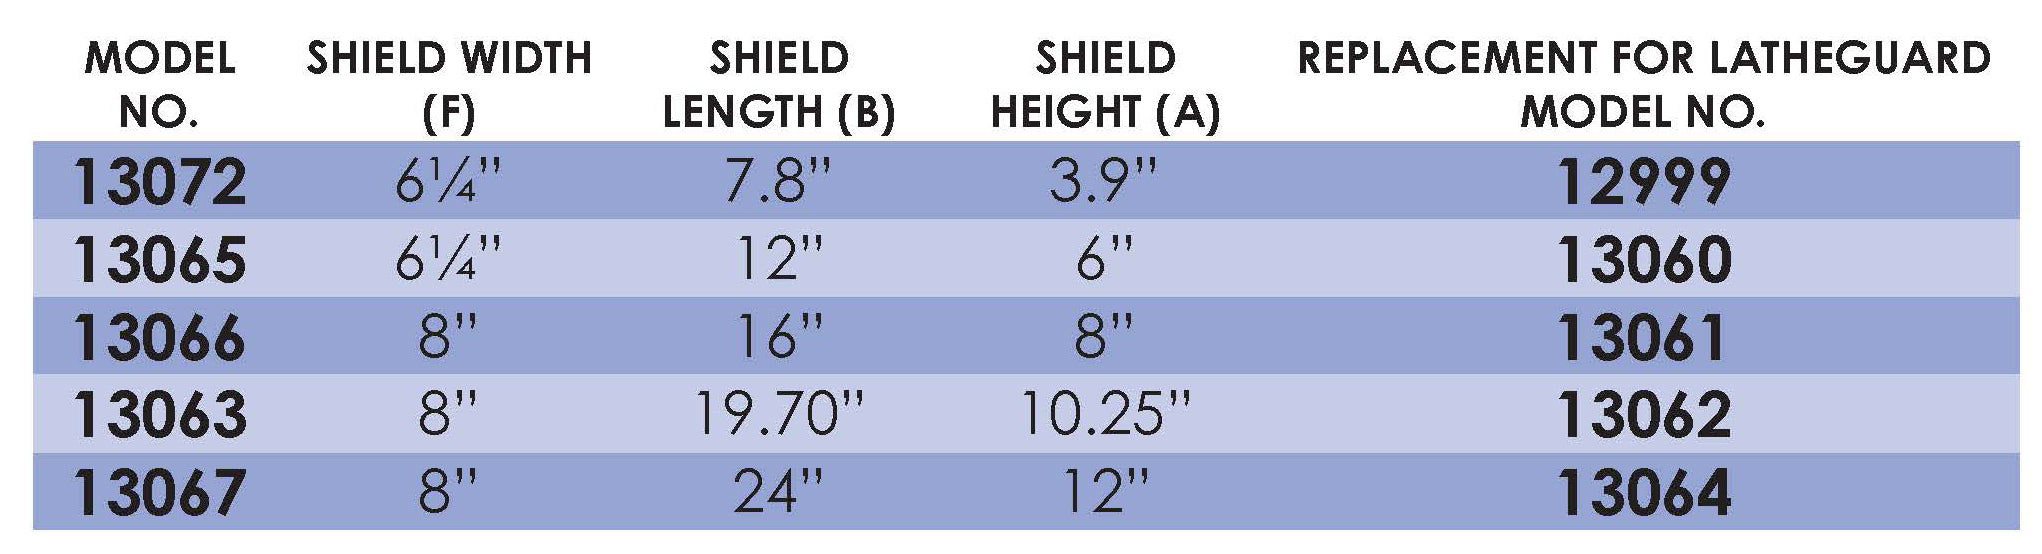 Replacement Shield - Medium/Large